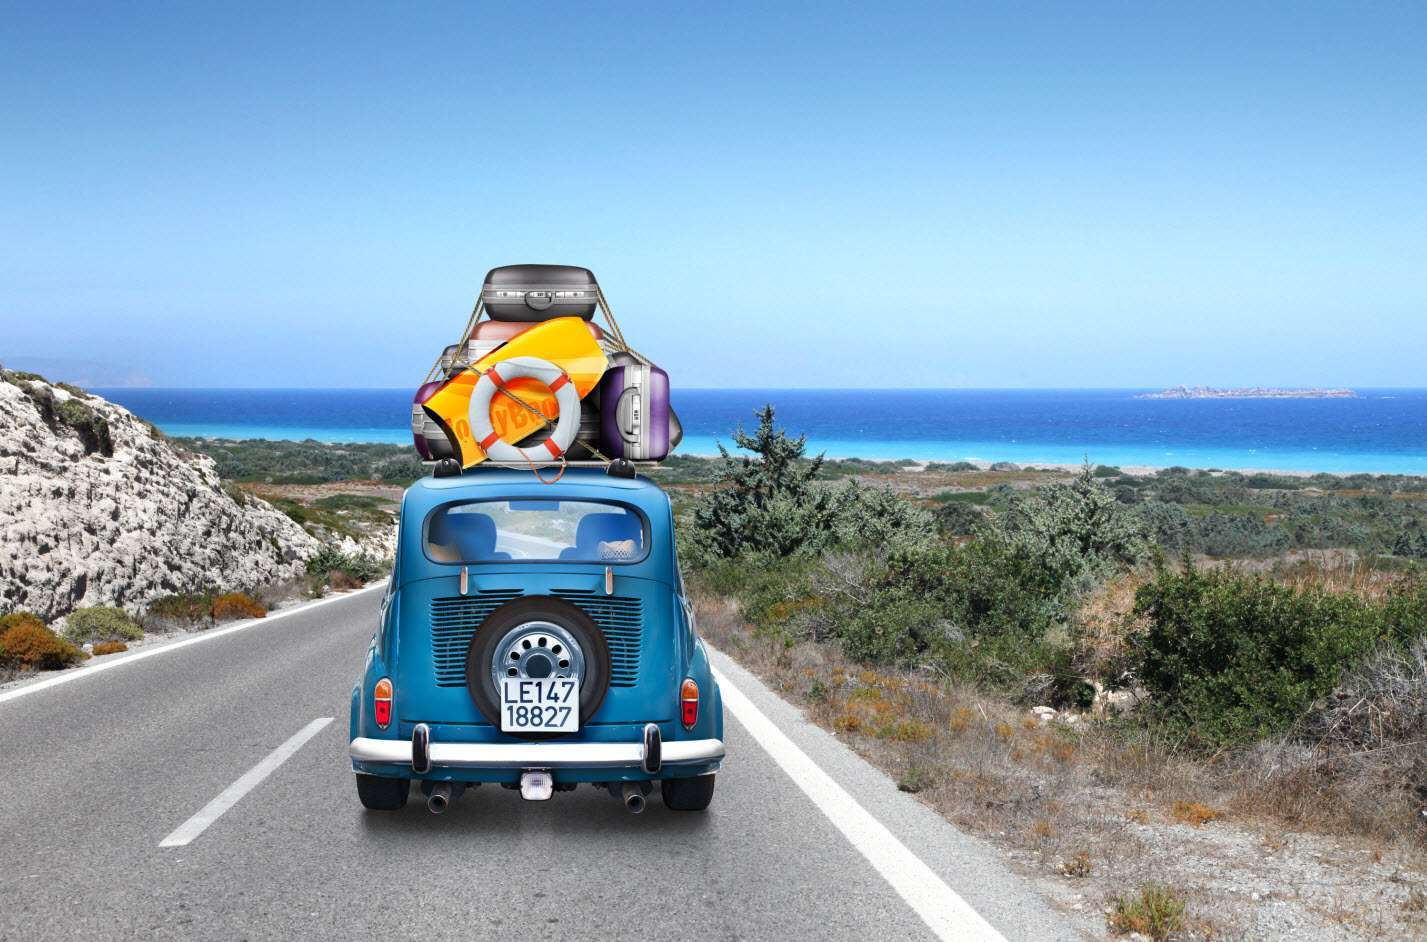 Capi e accessori per una vacanza on the road